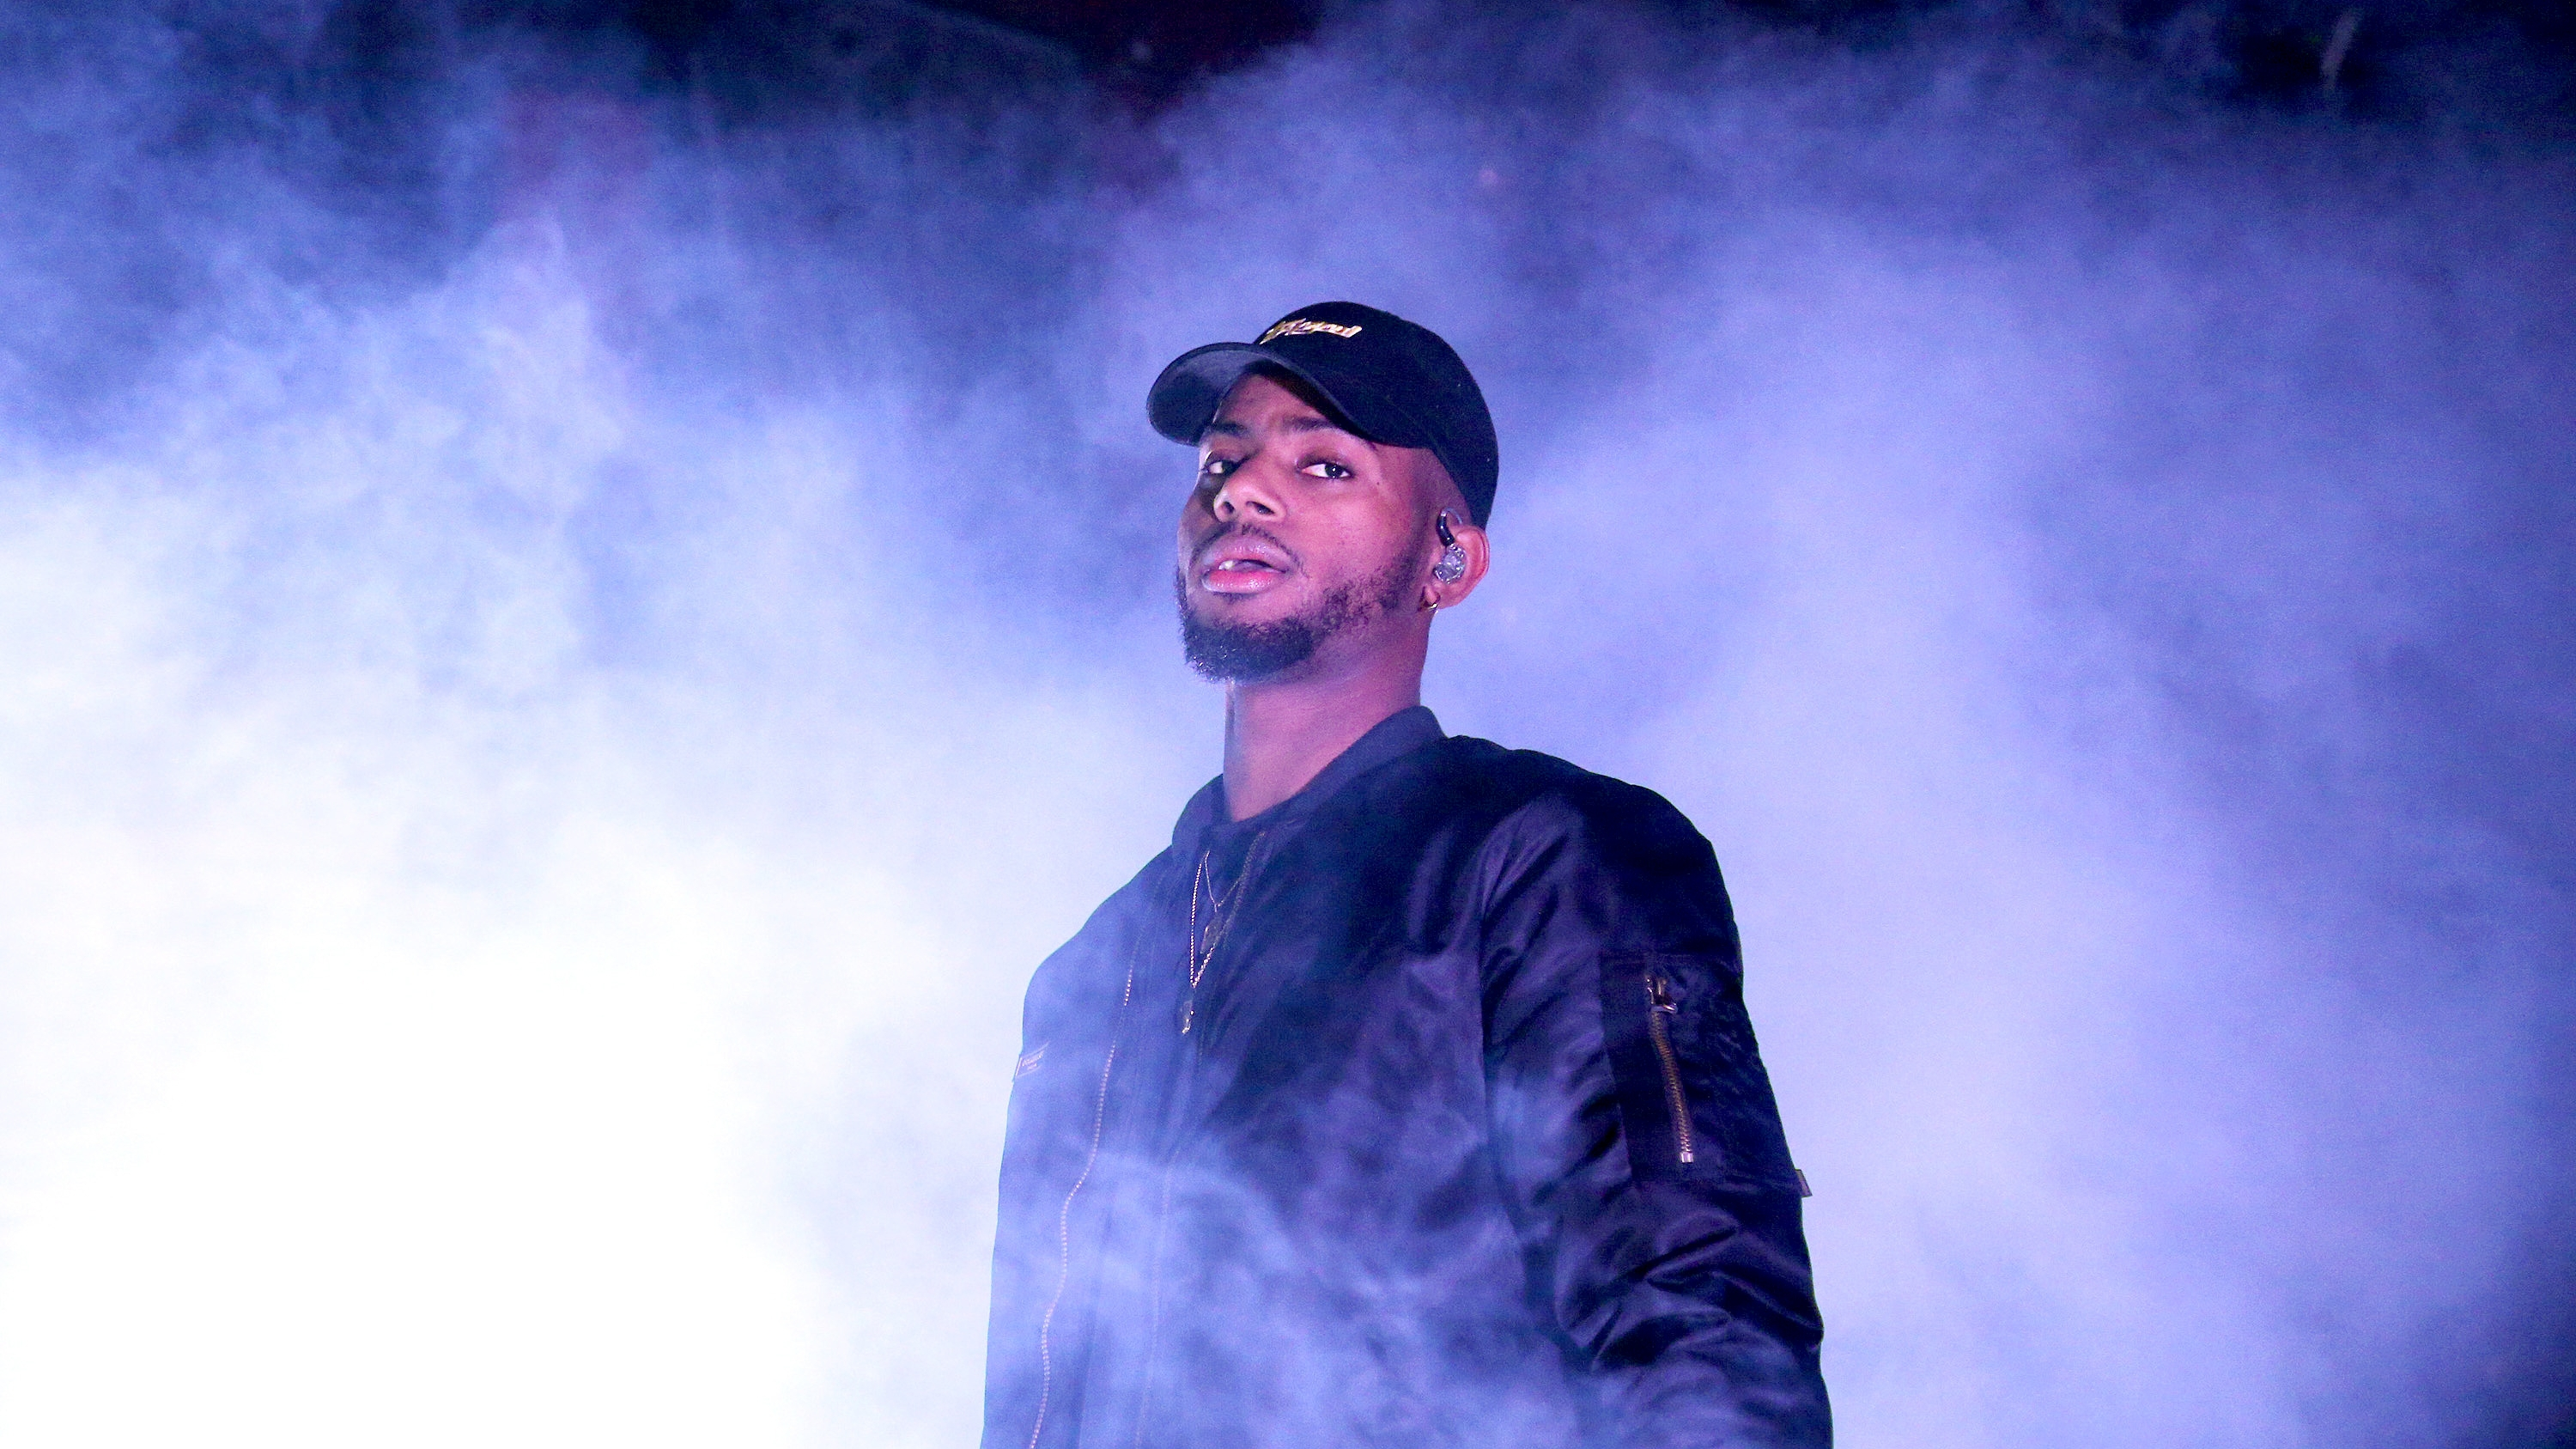 Bryson Tiller Wallpapers Images Photos Pictures Backgrounds